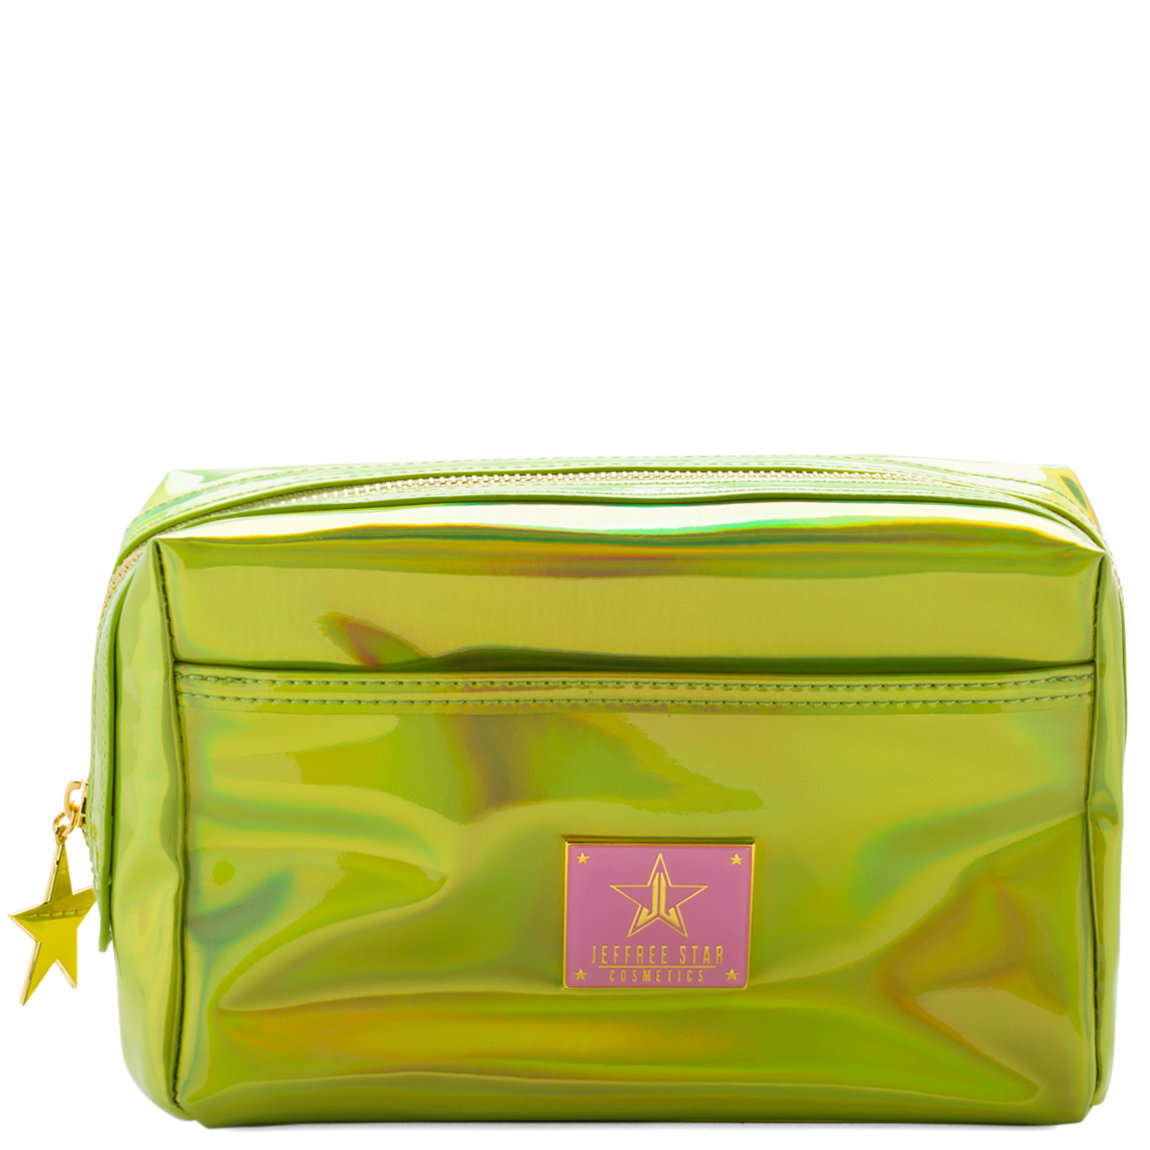 Jeffree Star Cosmetics Makeup Bag Holographic Alien Yellow product swatch.